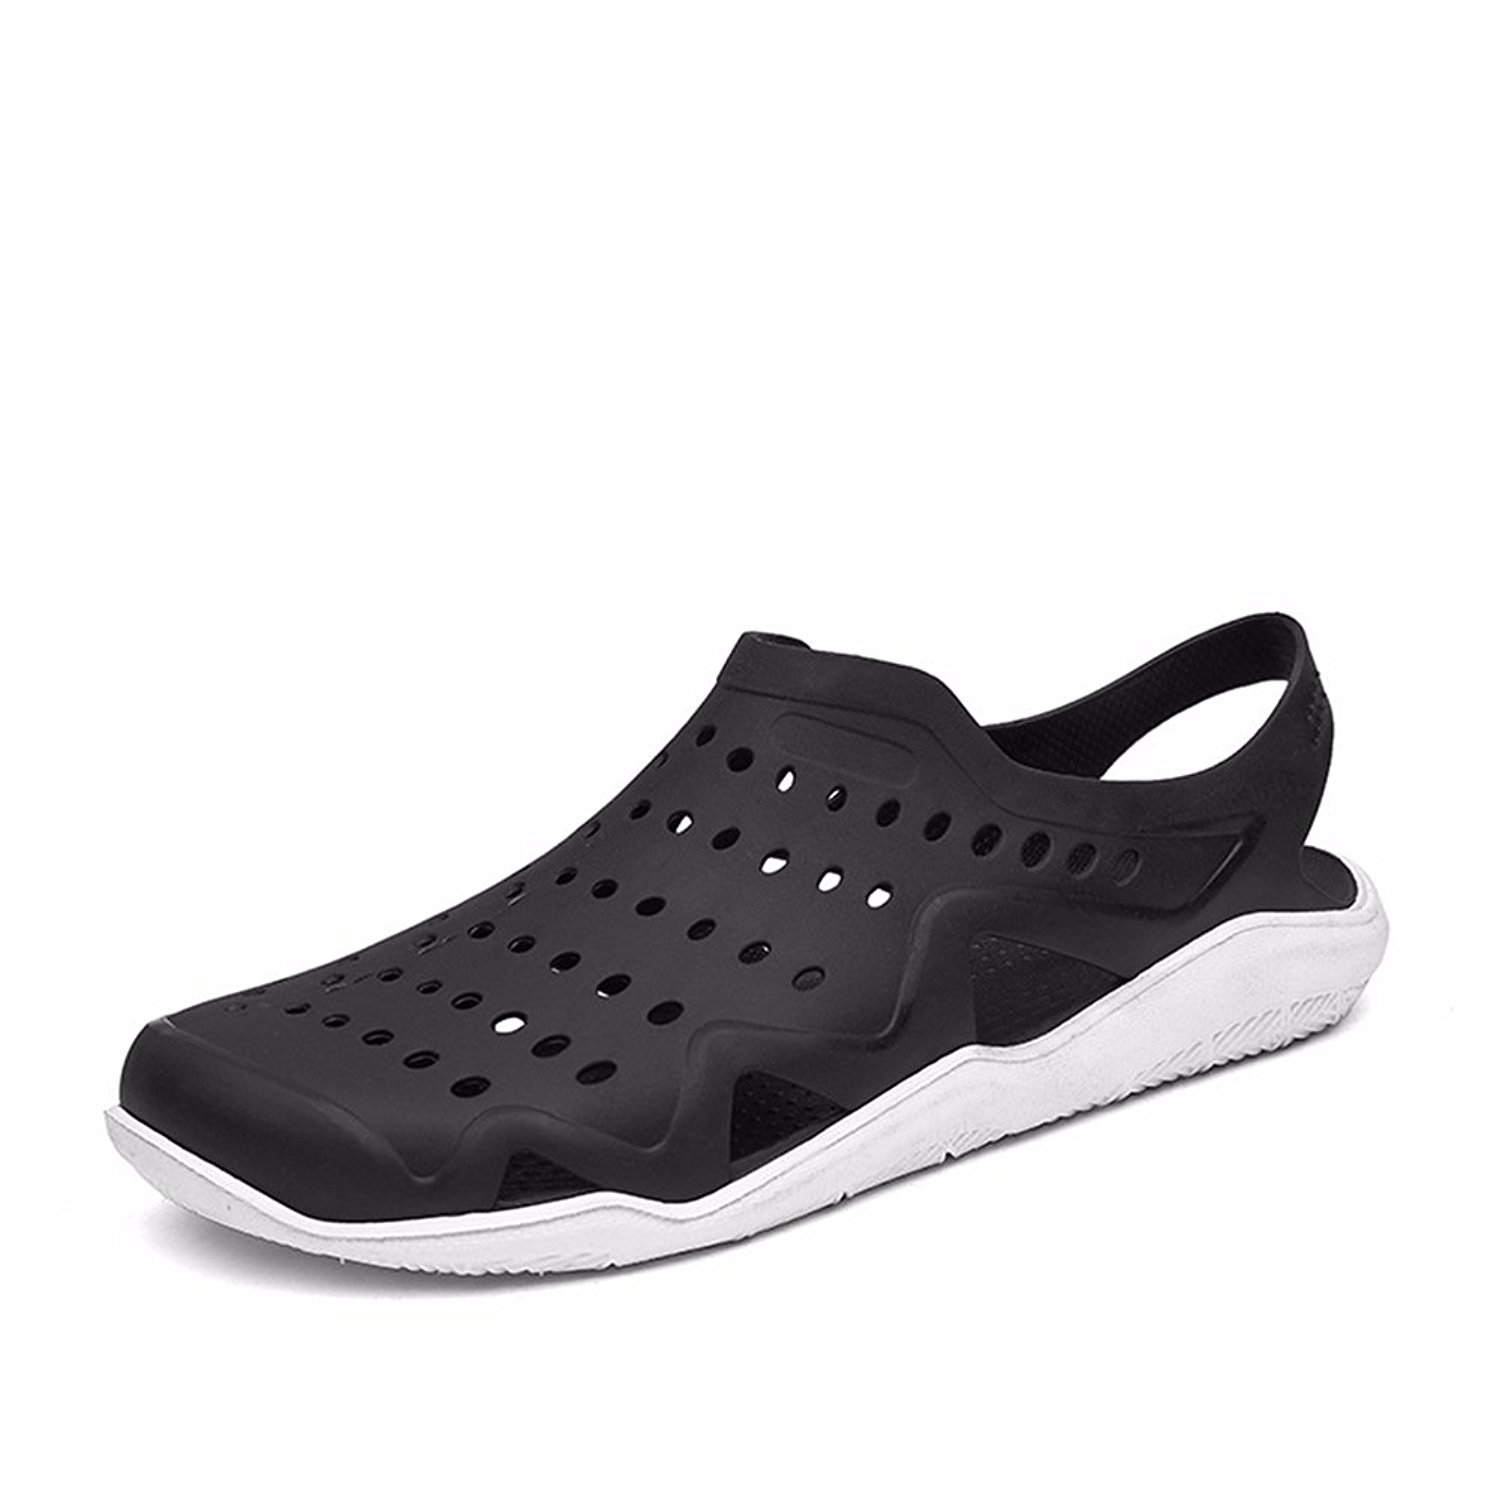 Sunny Holiday Mens Comfort Walking Water Shoes Pool Shower Saltwalter Sandals Outdoor Beach Aqua Walking Anti-Slip Clogs Shoes Black/White EU40